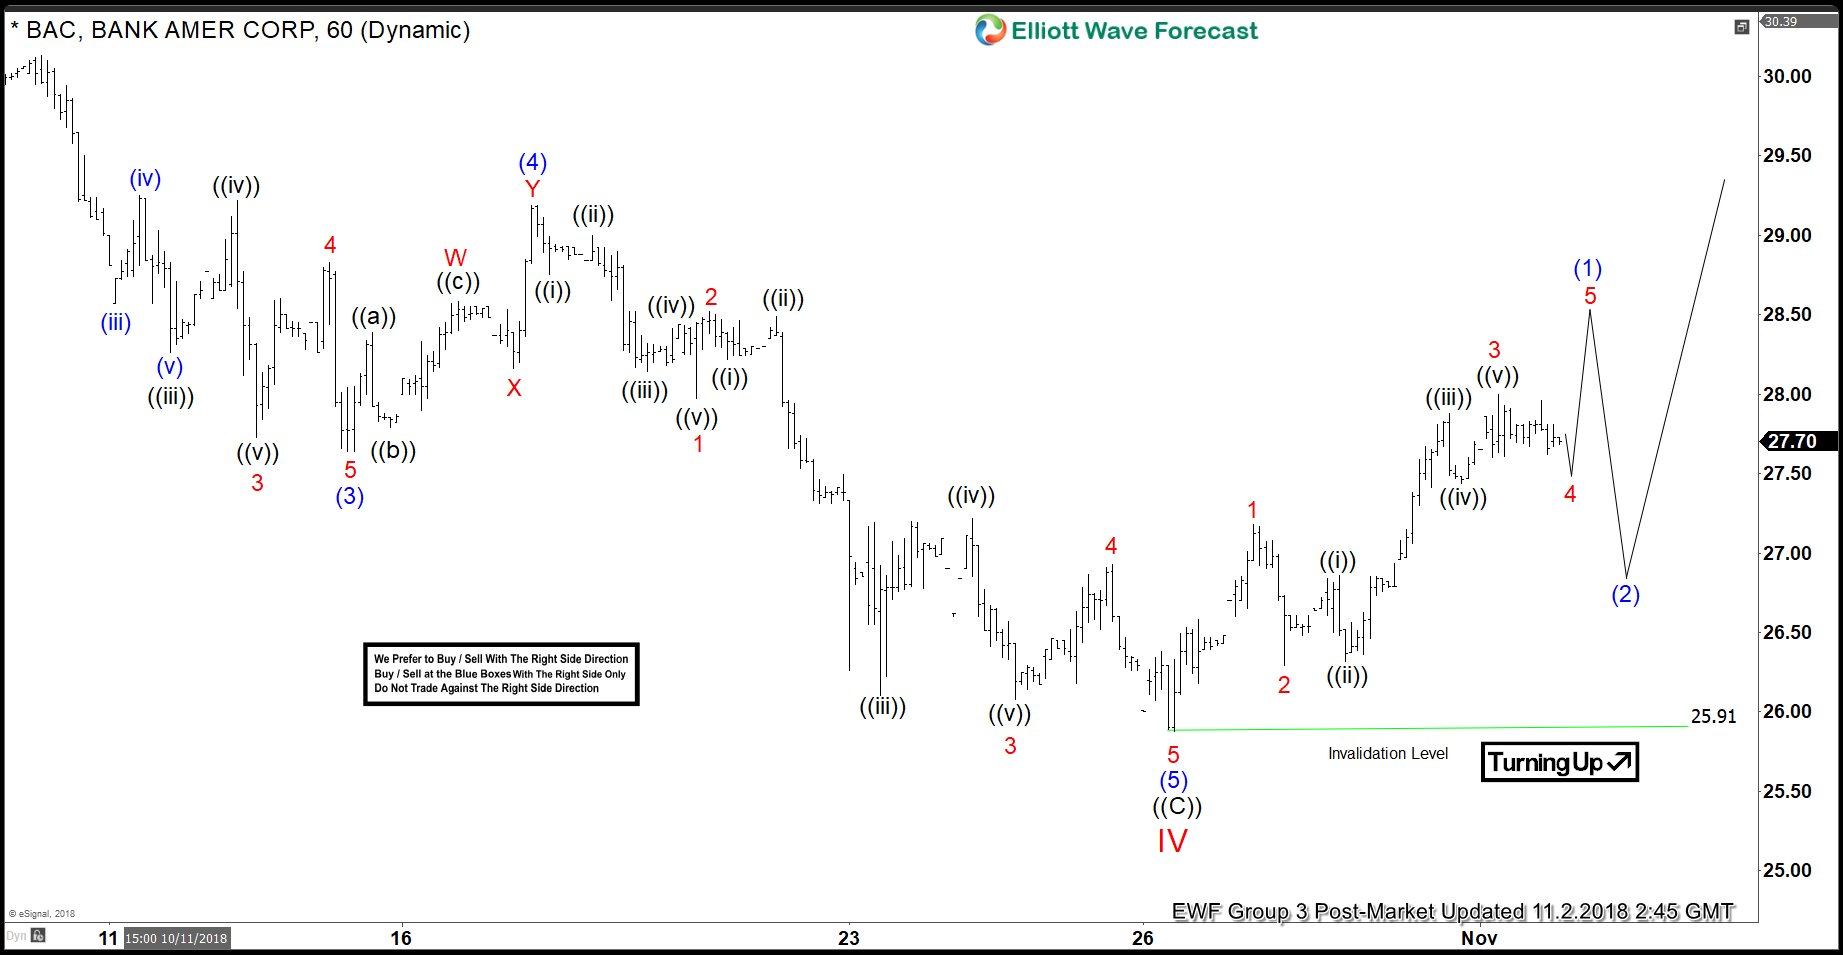 BAC Elliott Wave Analysis: Correction Ended